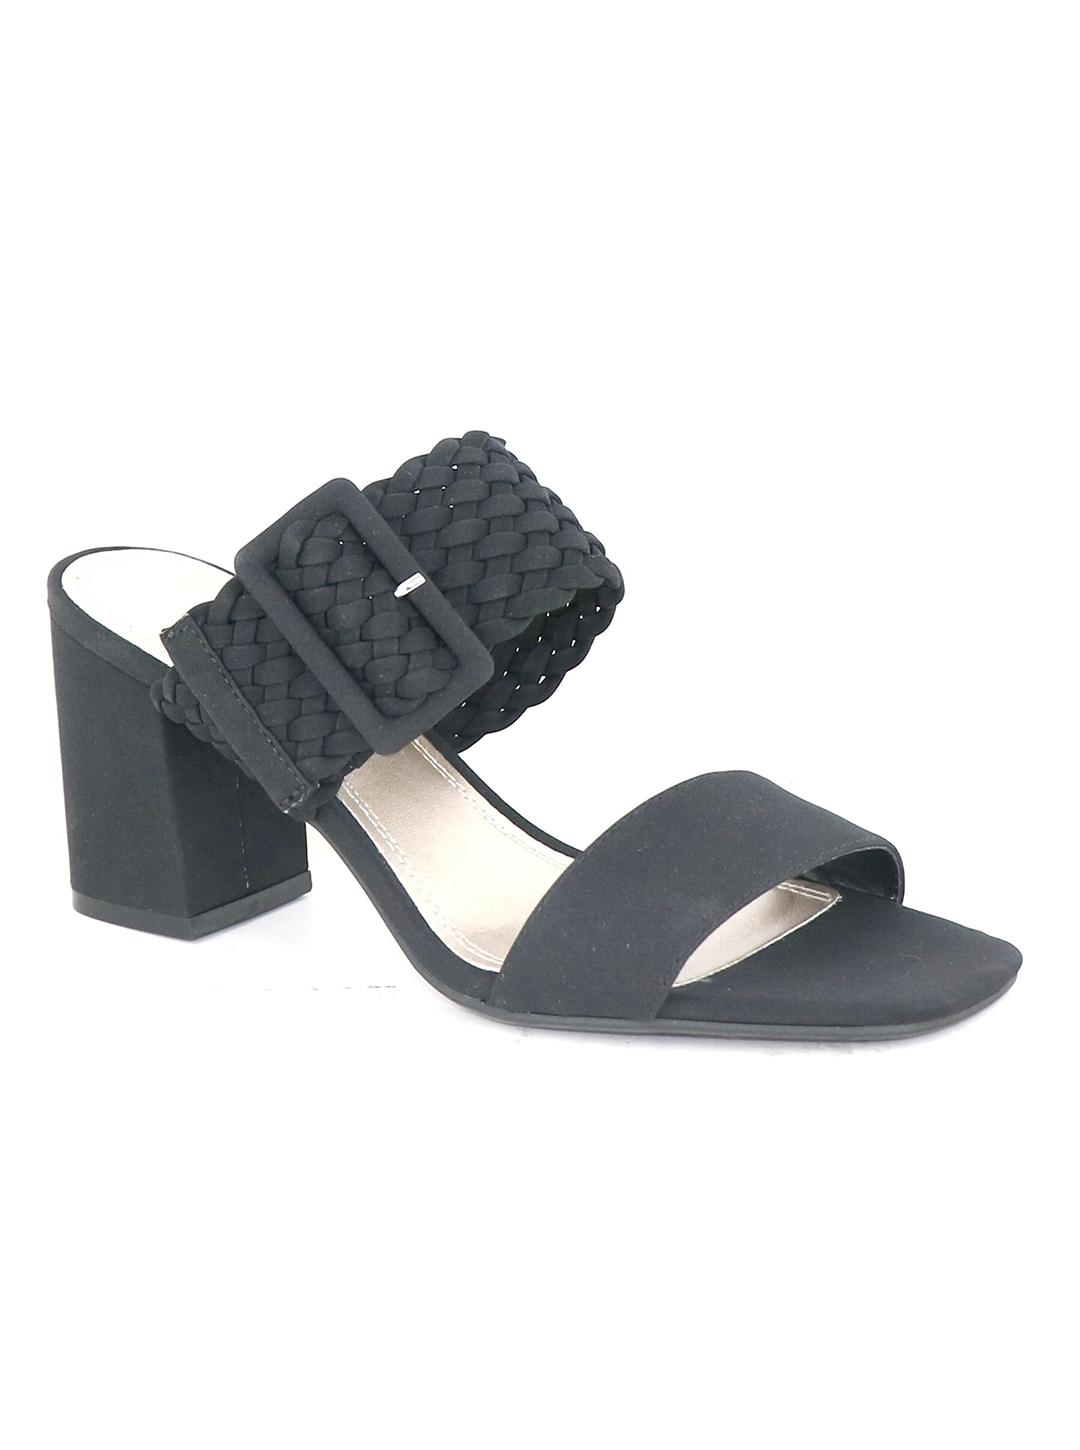 Impo Vlossom Block Heel Sandals -black - Front